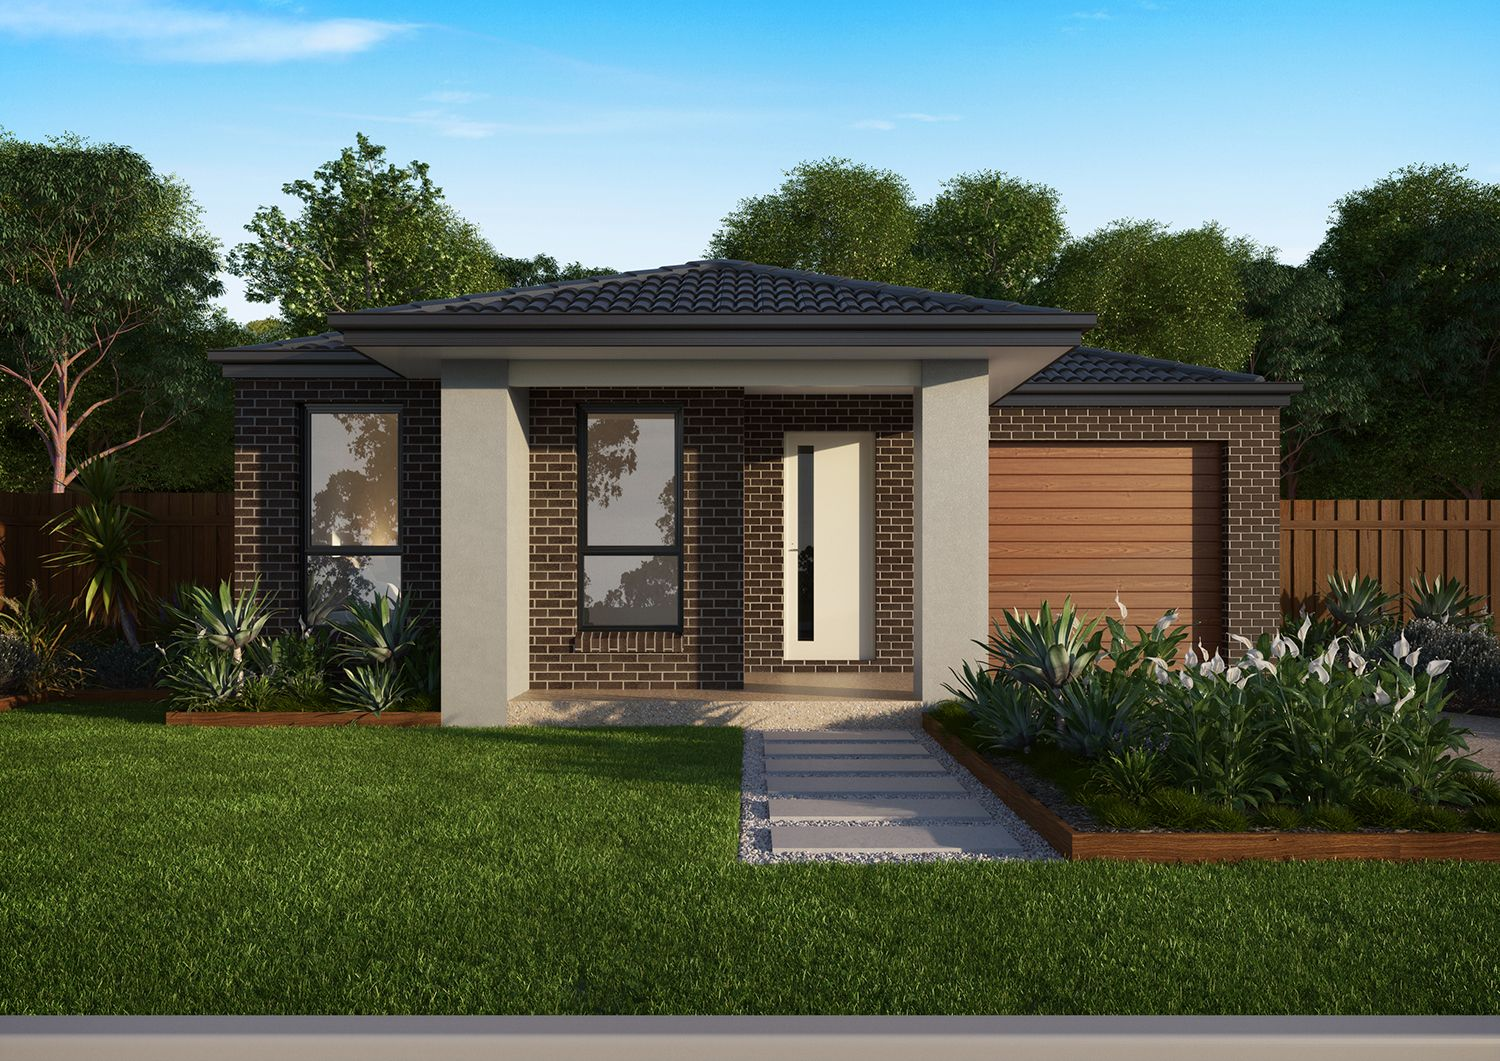 Lot 134 Meadows Drive, Bowery Estate, Dean VIC 3363, Image 0